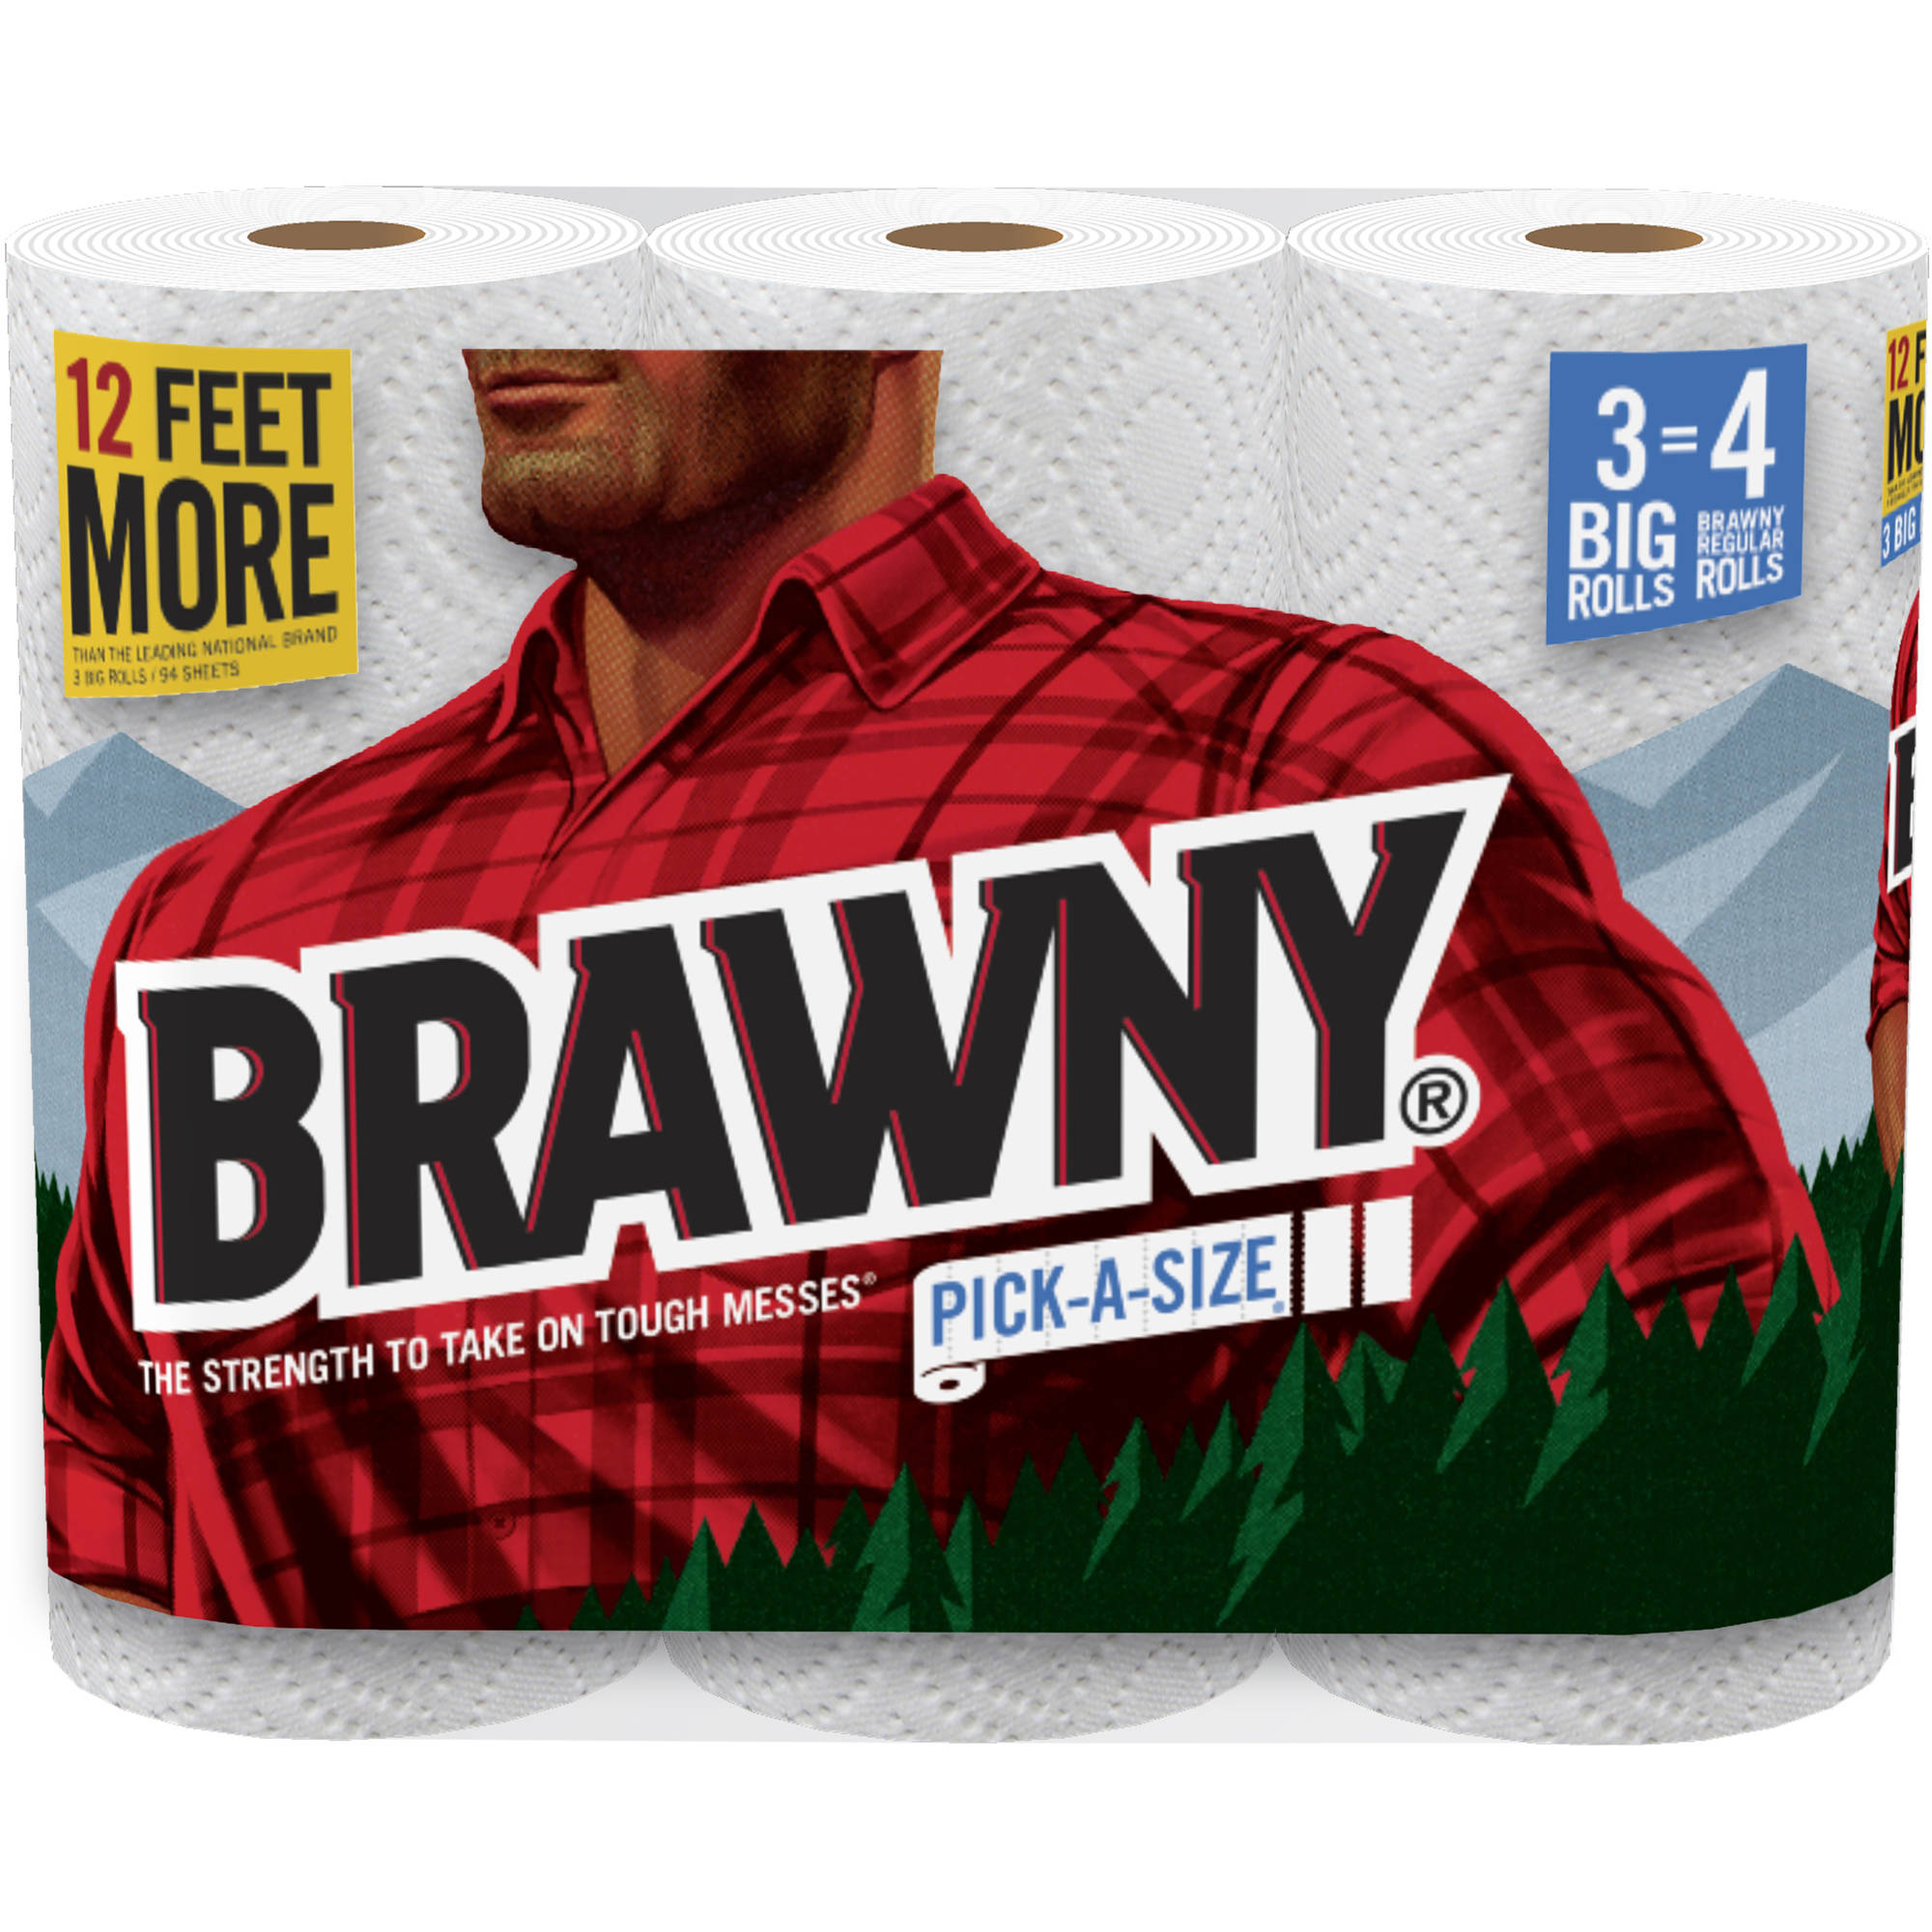 Brawny Pick-a-Size Big Roll Paper Towels, 104 sheets, 3 rolls